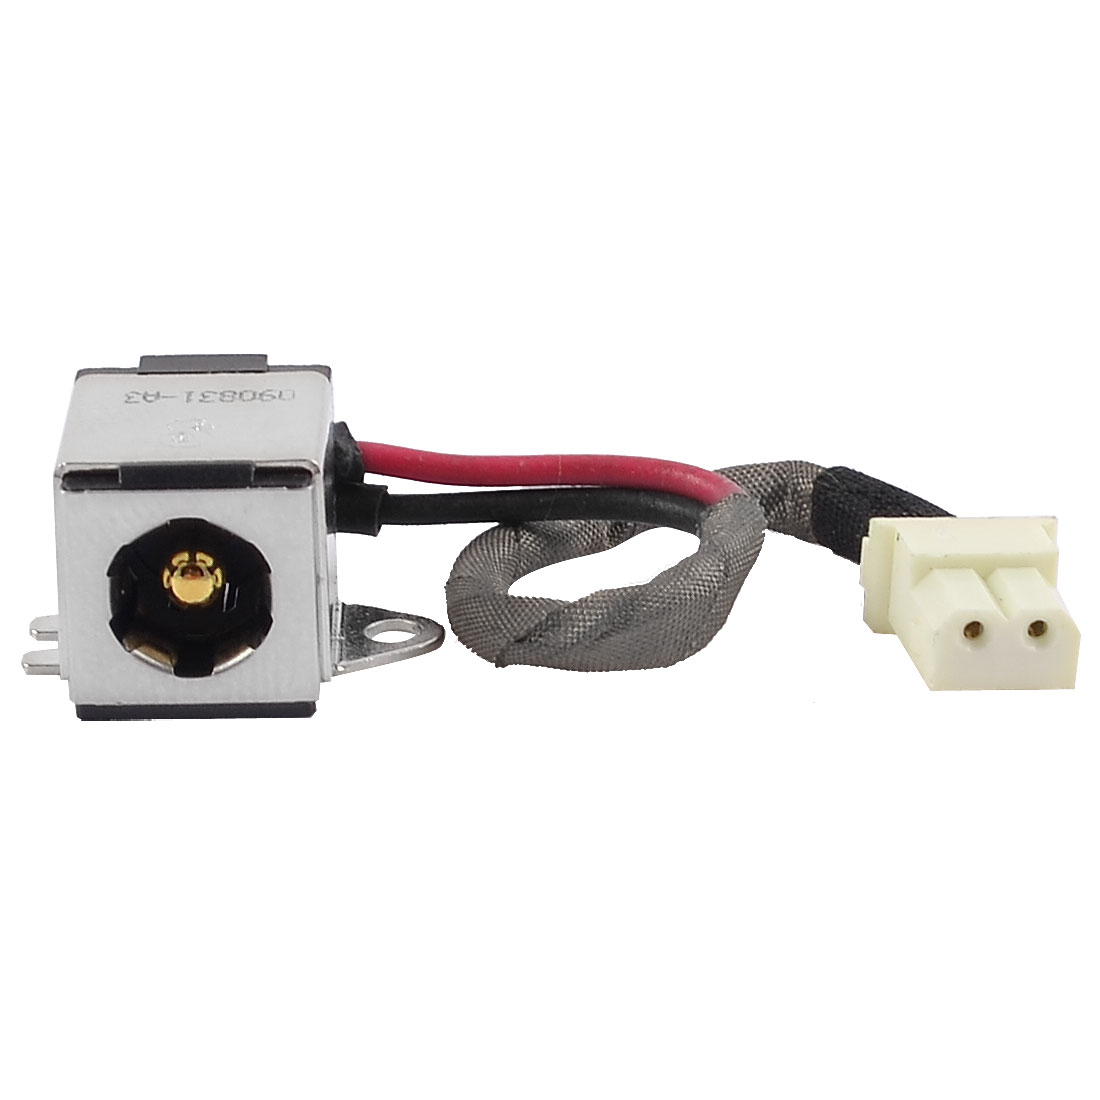 Laptop PJ136 DC Power Jack Connector w Cable for Lenovo